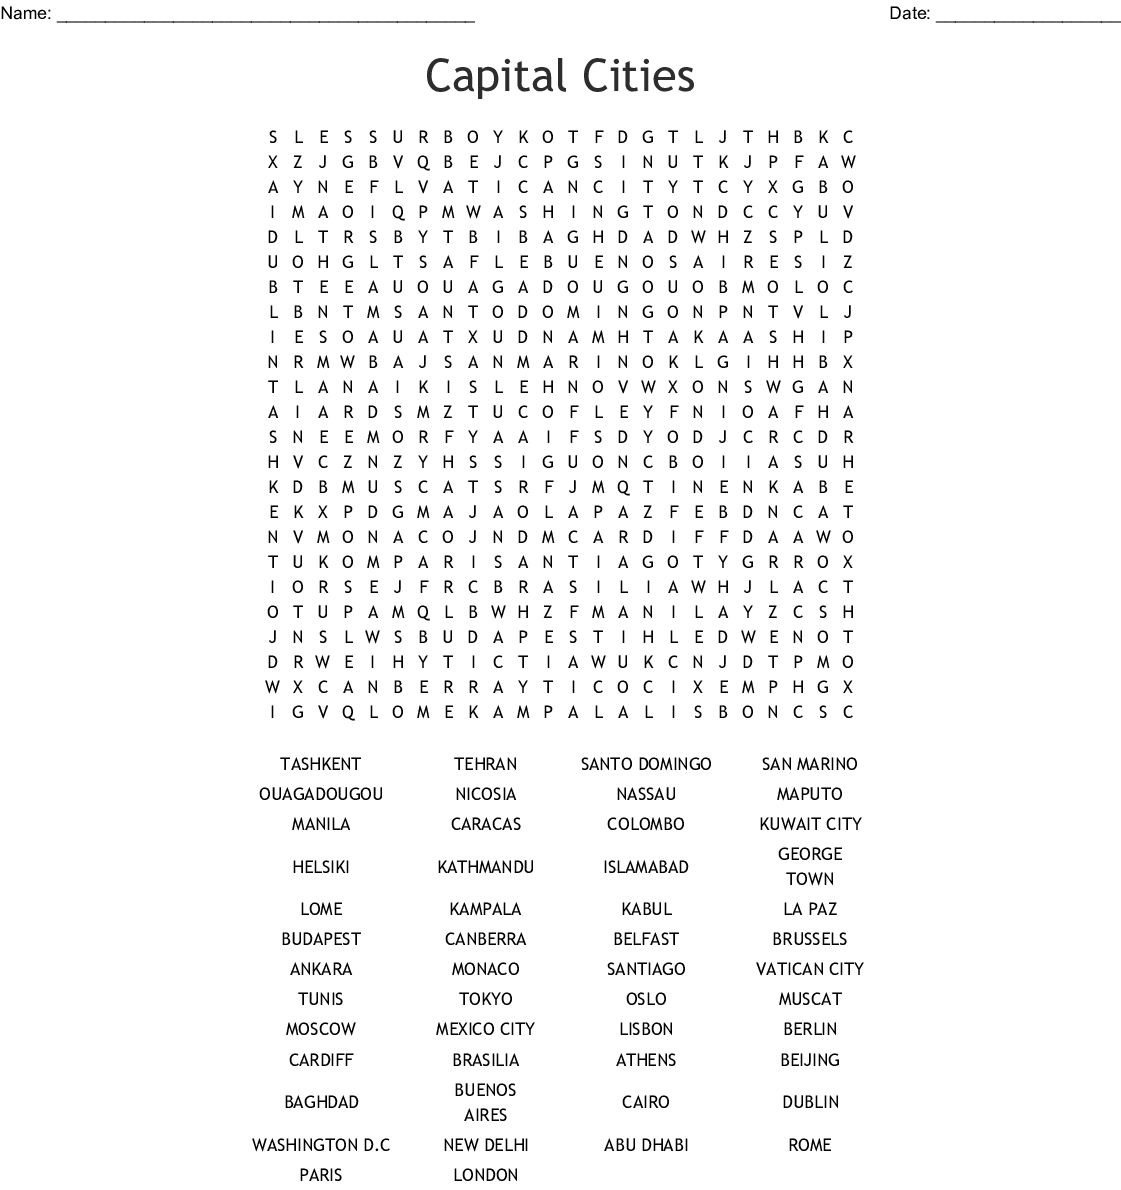 Capital City Worksheet